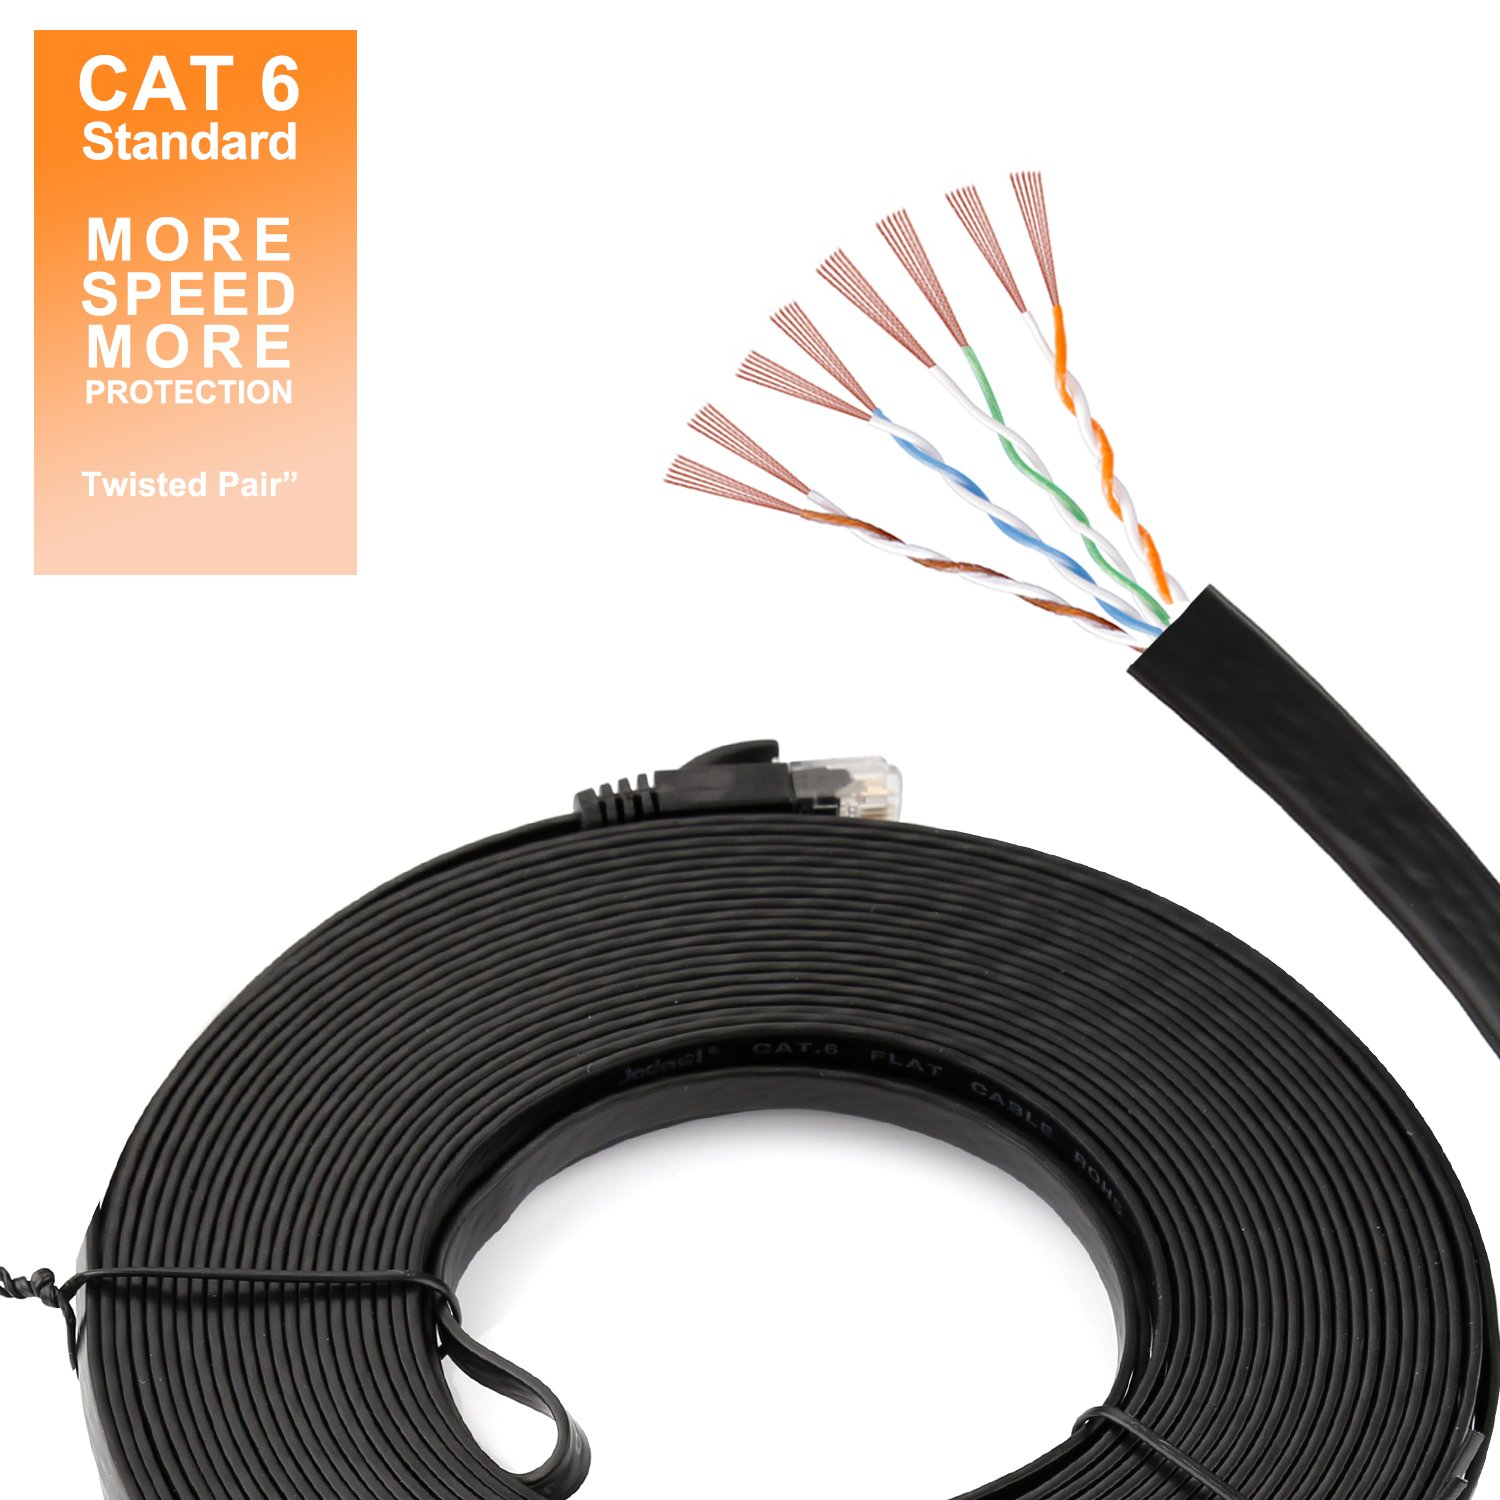 Cat 6 Ethernet Cable 1 Ft Black Flat Internet Network Rj45 Wiring Jadaol Computer Short Cat6 Patch Lan With Snagless